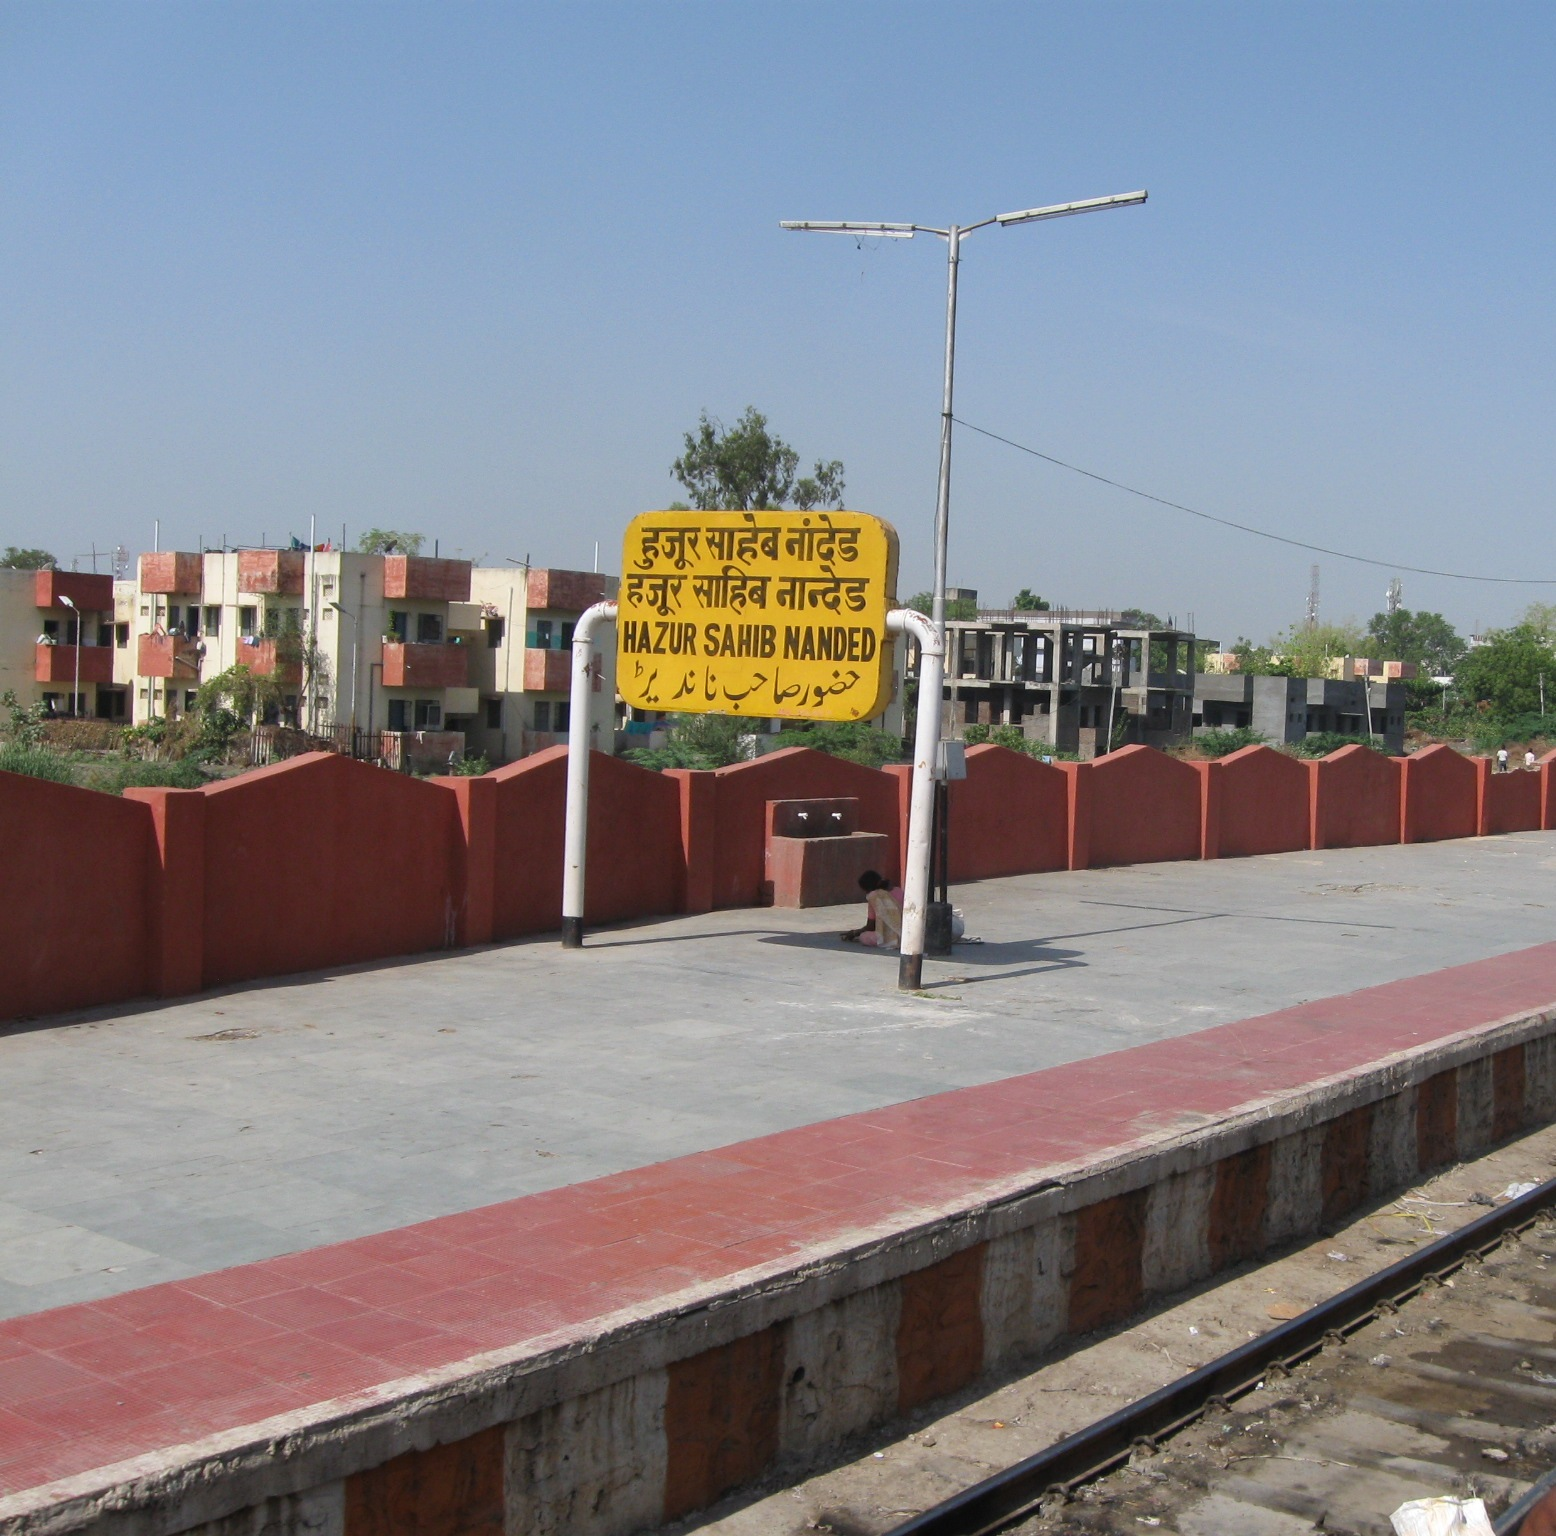 Nanded India  City new picture : Nanded Railway Station Hingoli, India